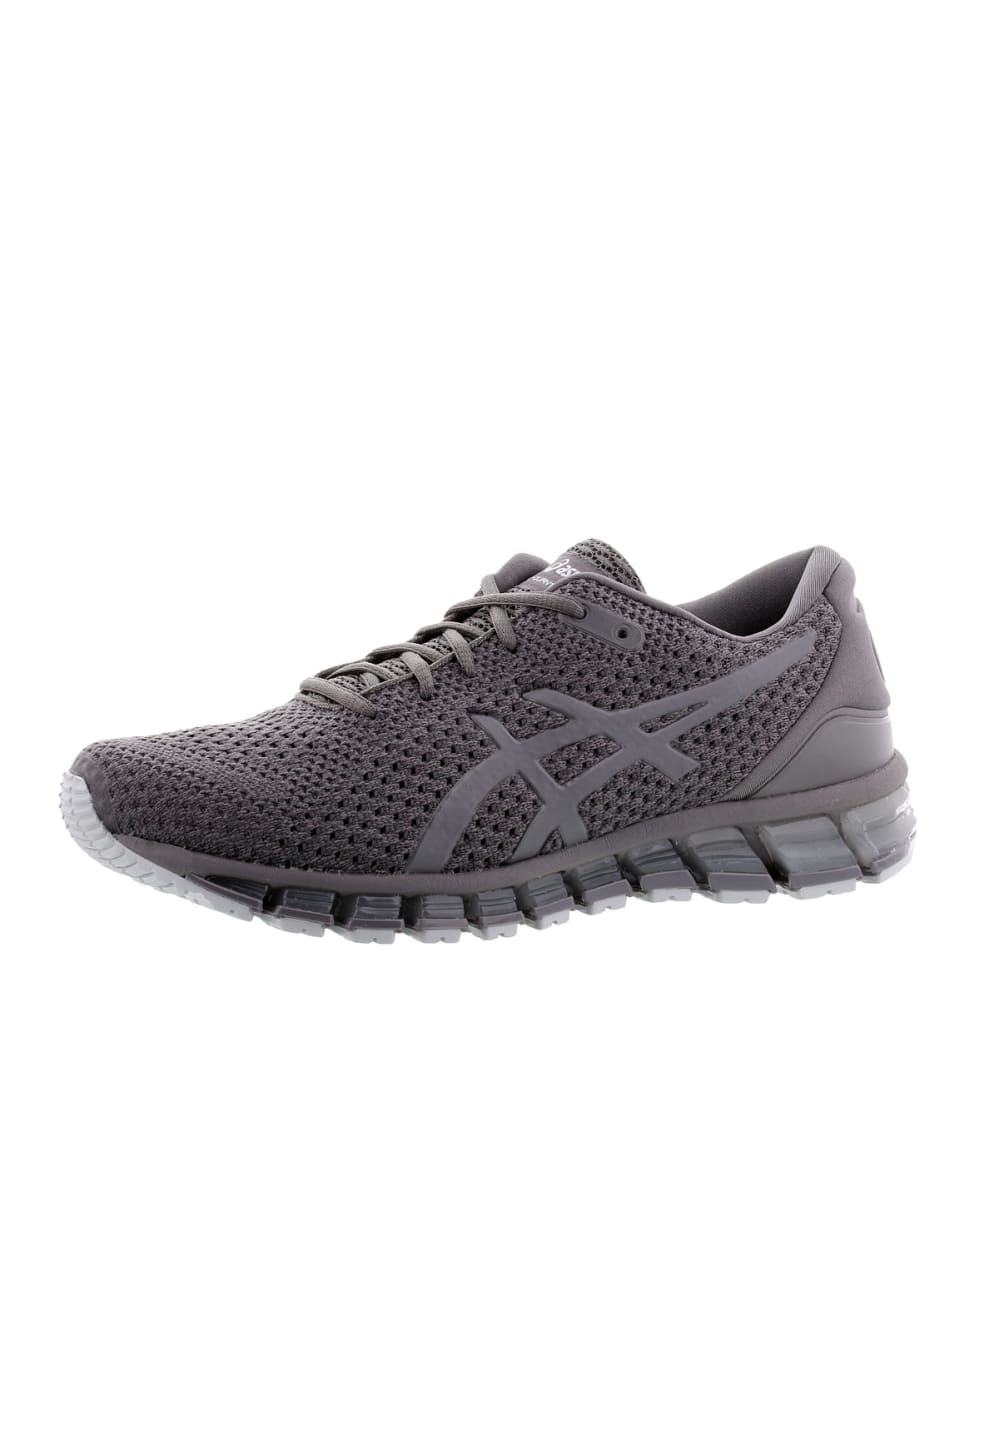 036561f3e0 ASICS GEL-Quantum 360 Knit 2 - Running shoes for Men - Grey